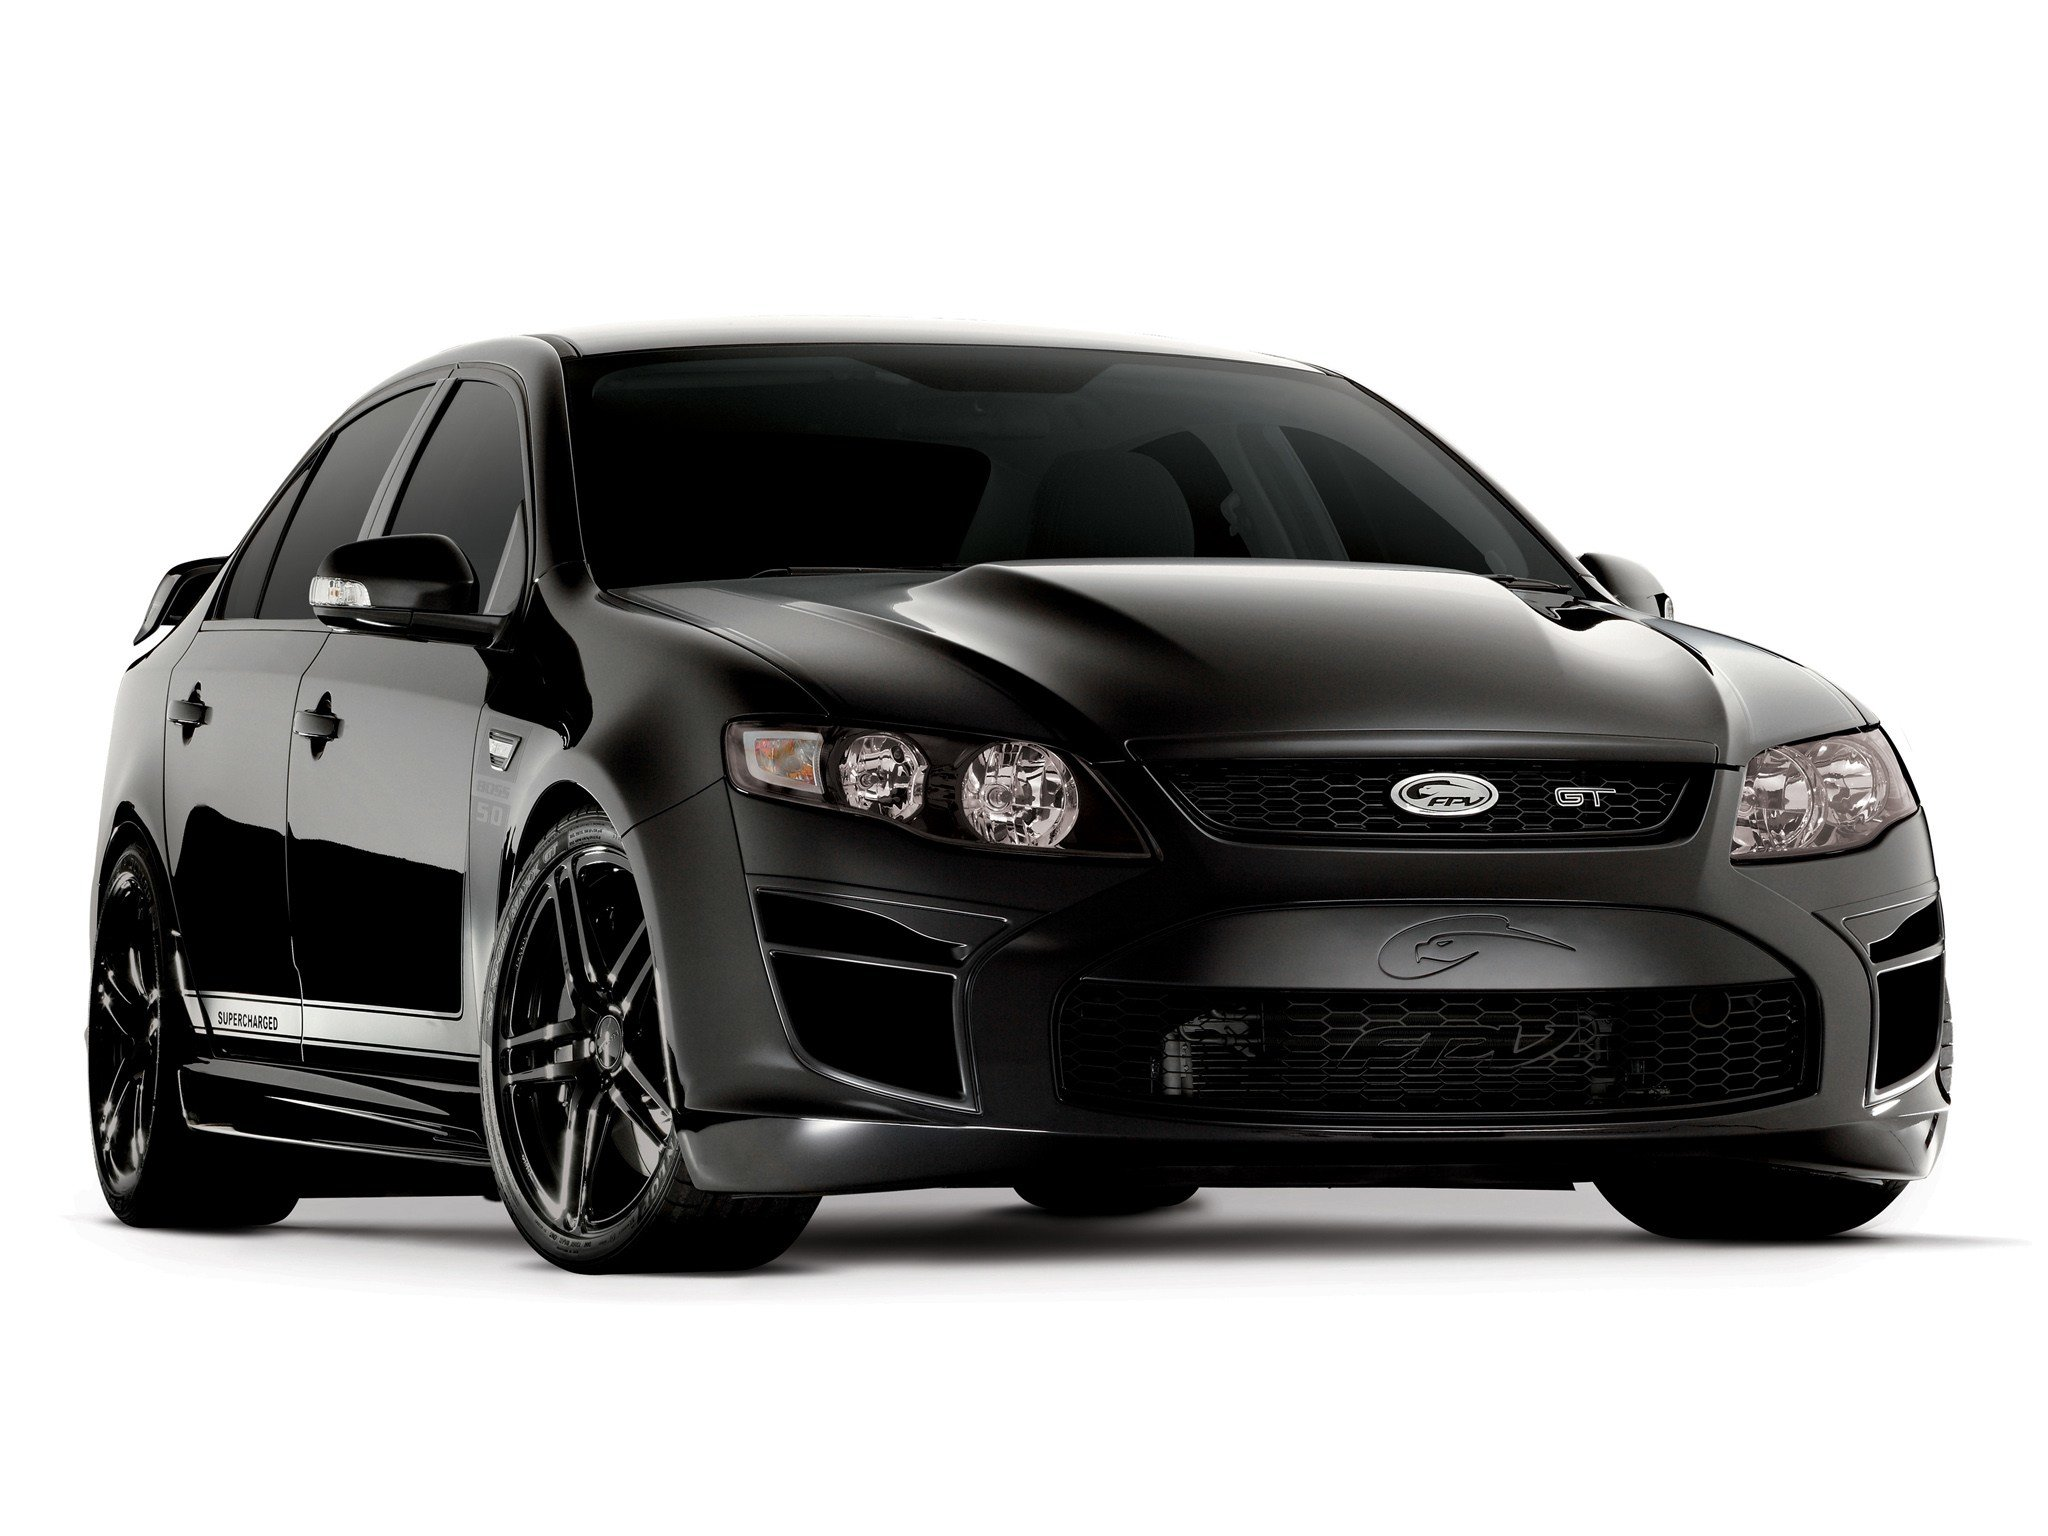 New Black Falcon Fpv Falcon Gt Concept On This Month